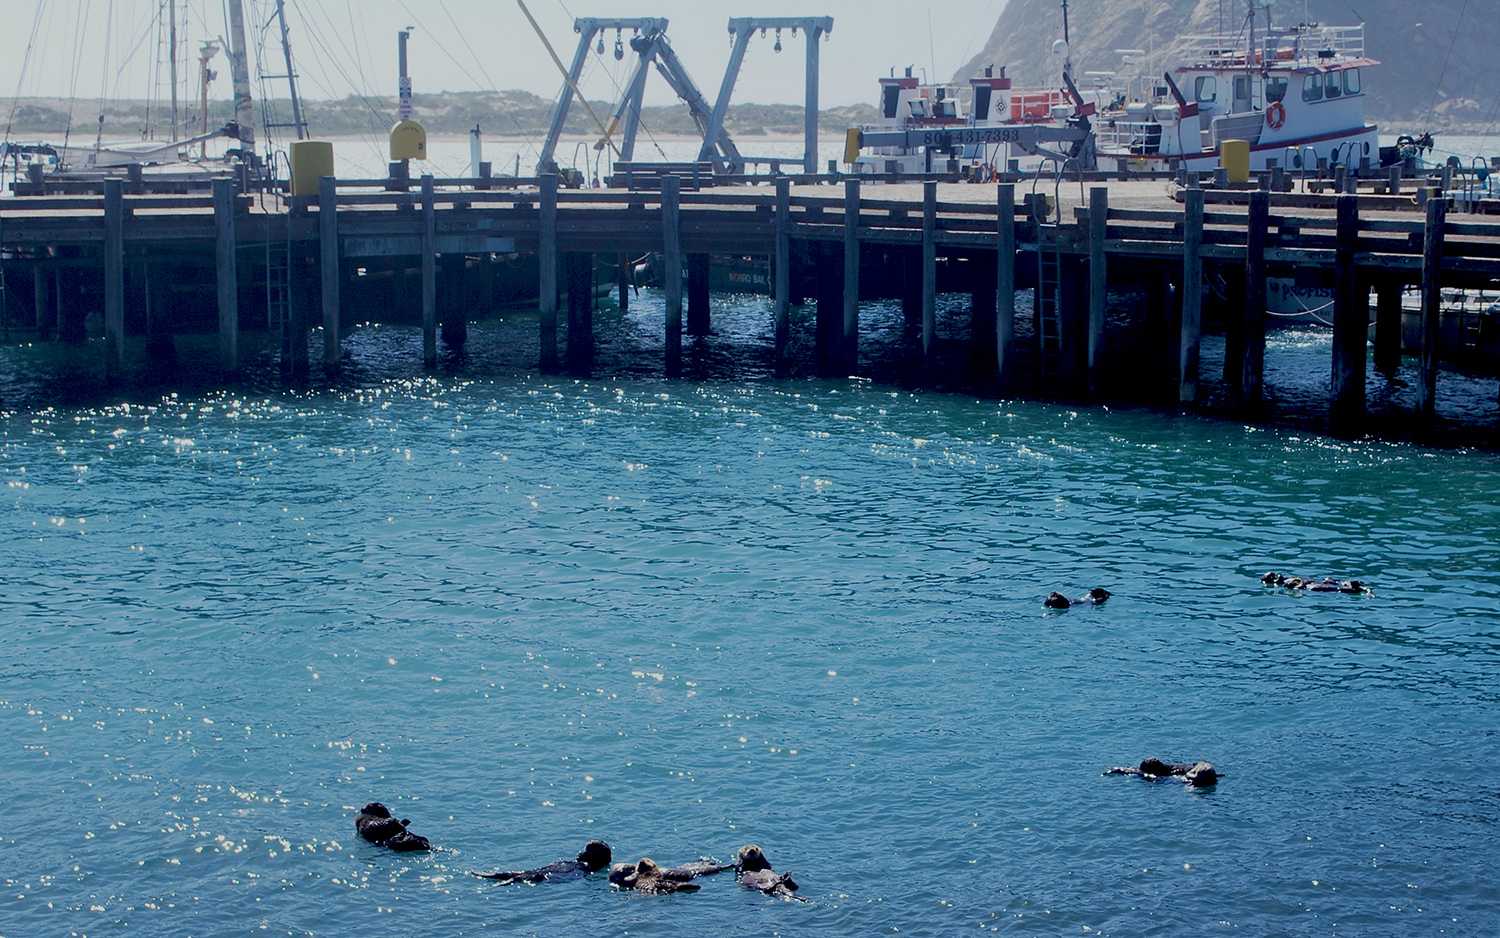 A raft of sea otters hanging out in Morro Bay